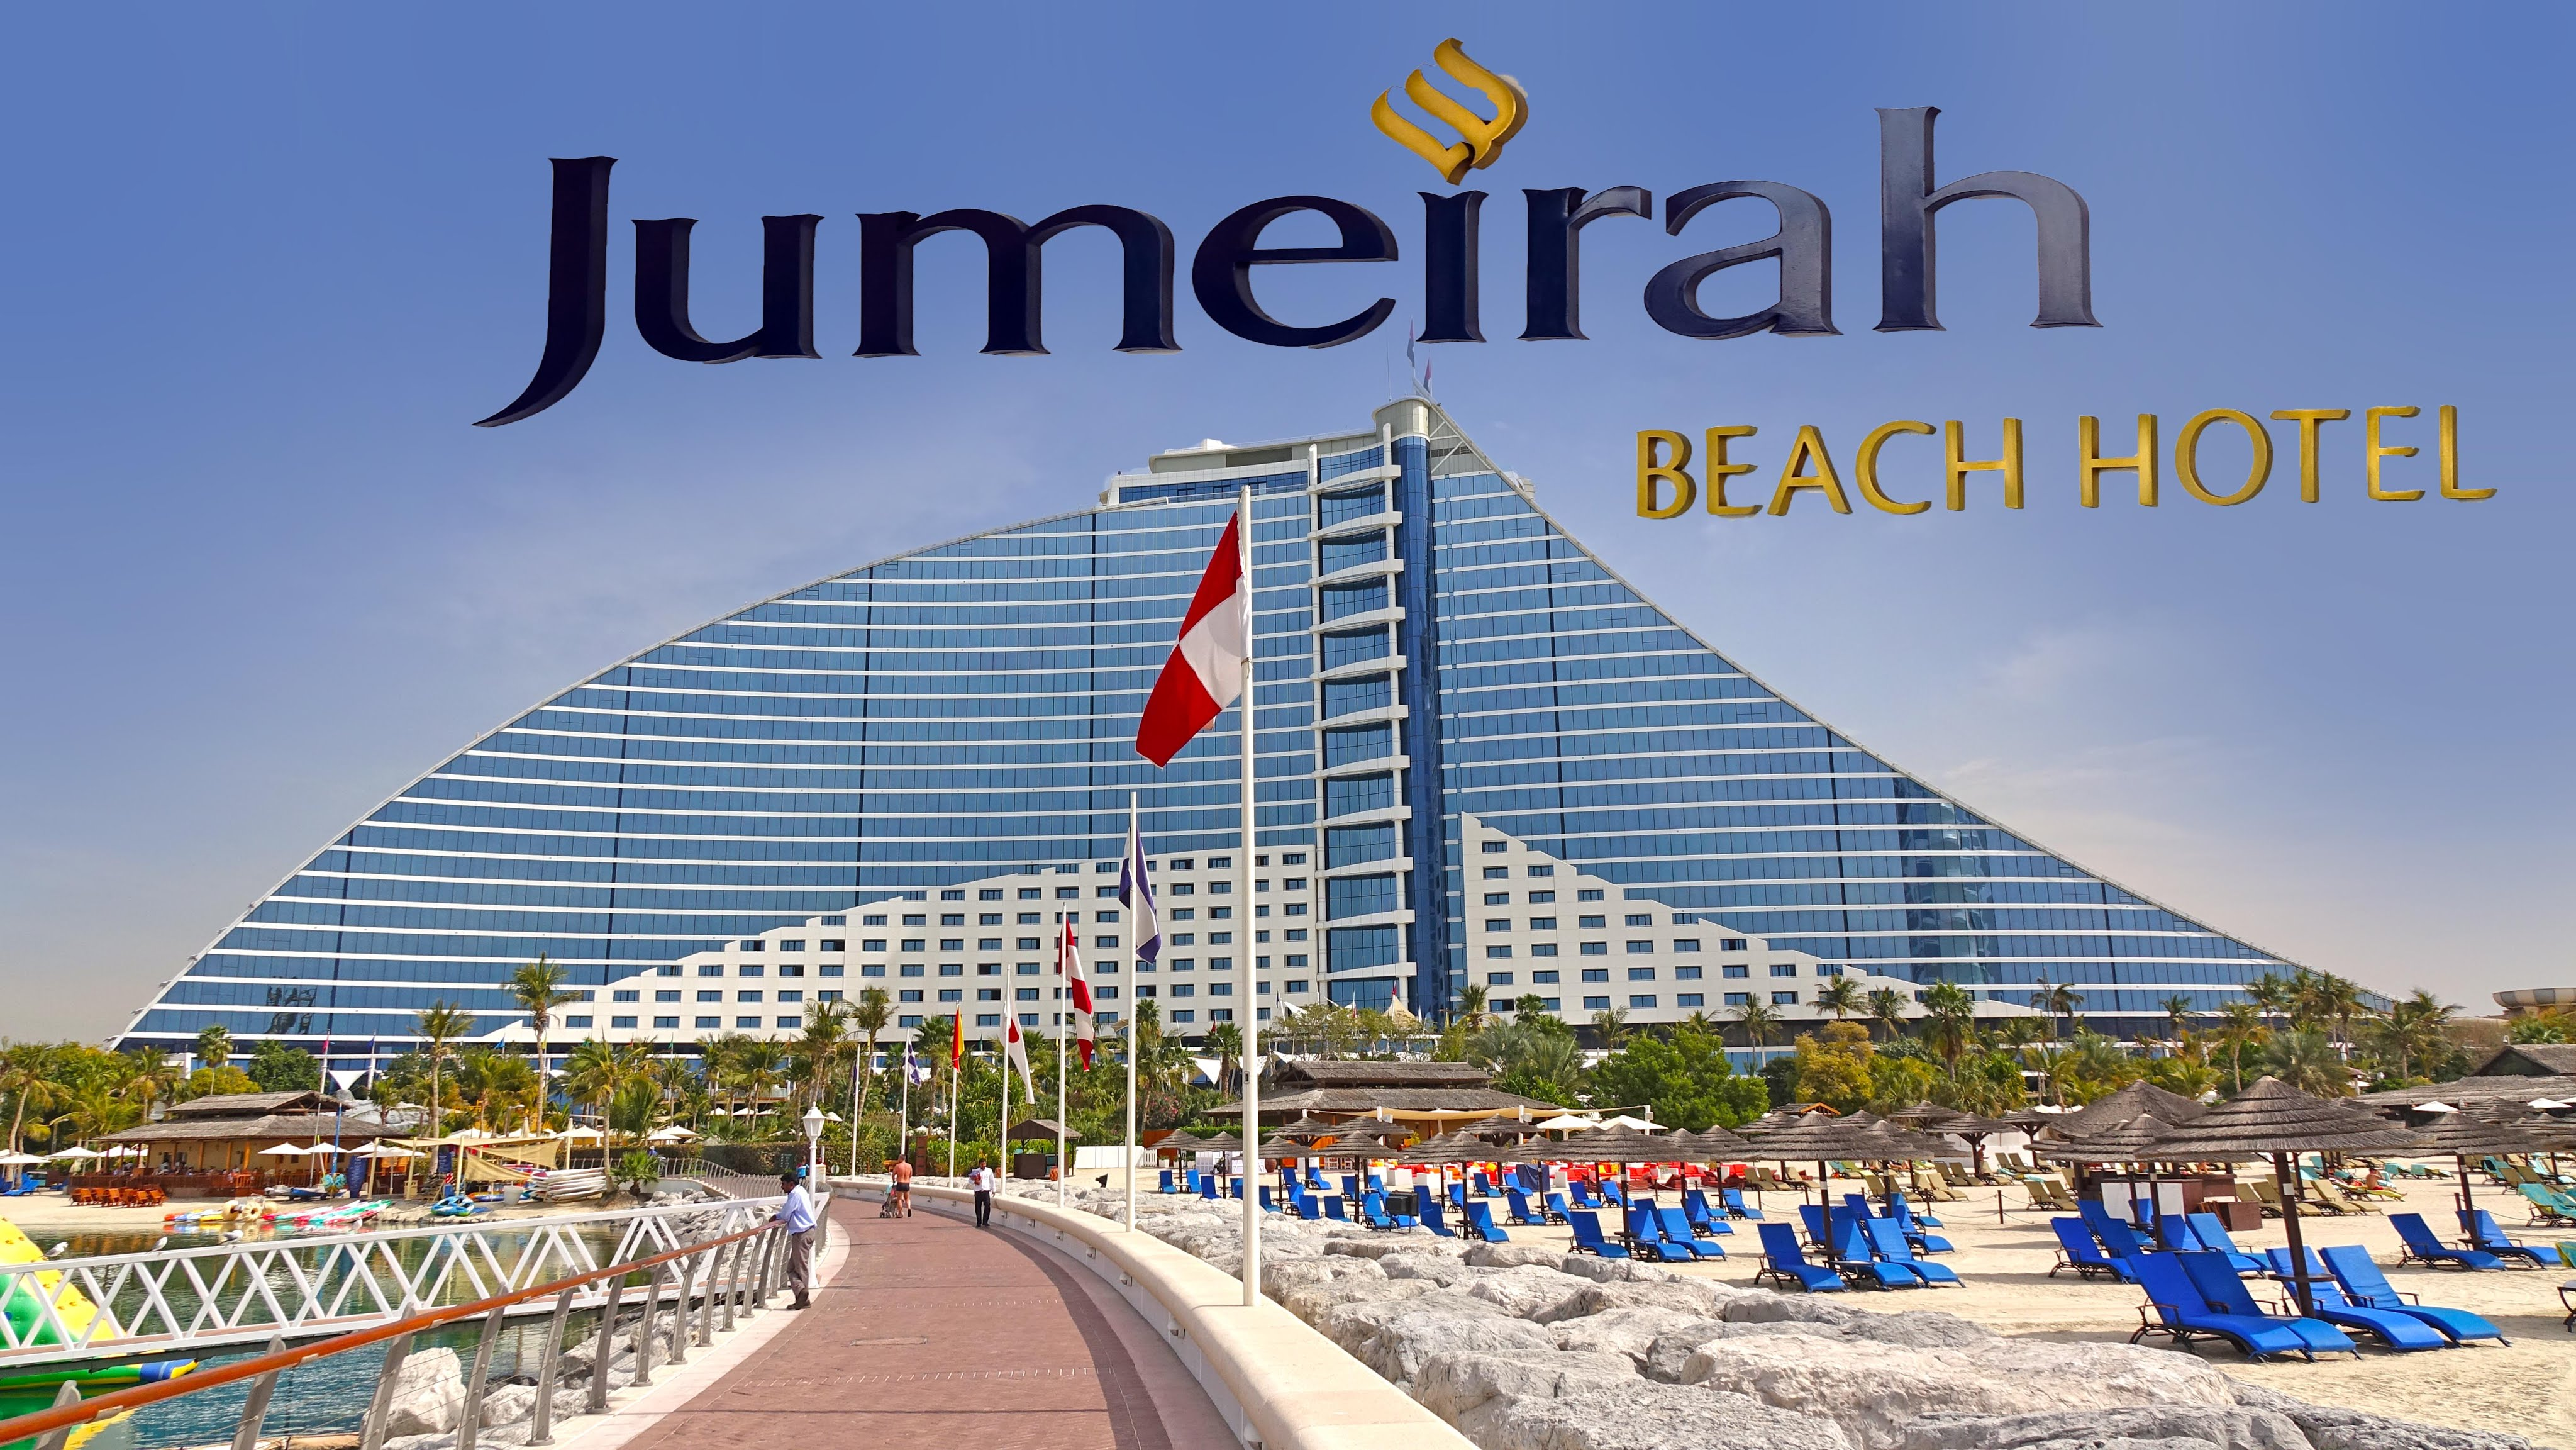 Jumeirah Beach Hotel To Undergo Major Makeover In Summer 2018 The Levant News